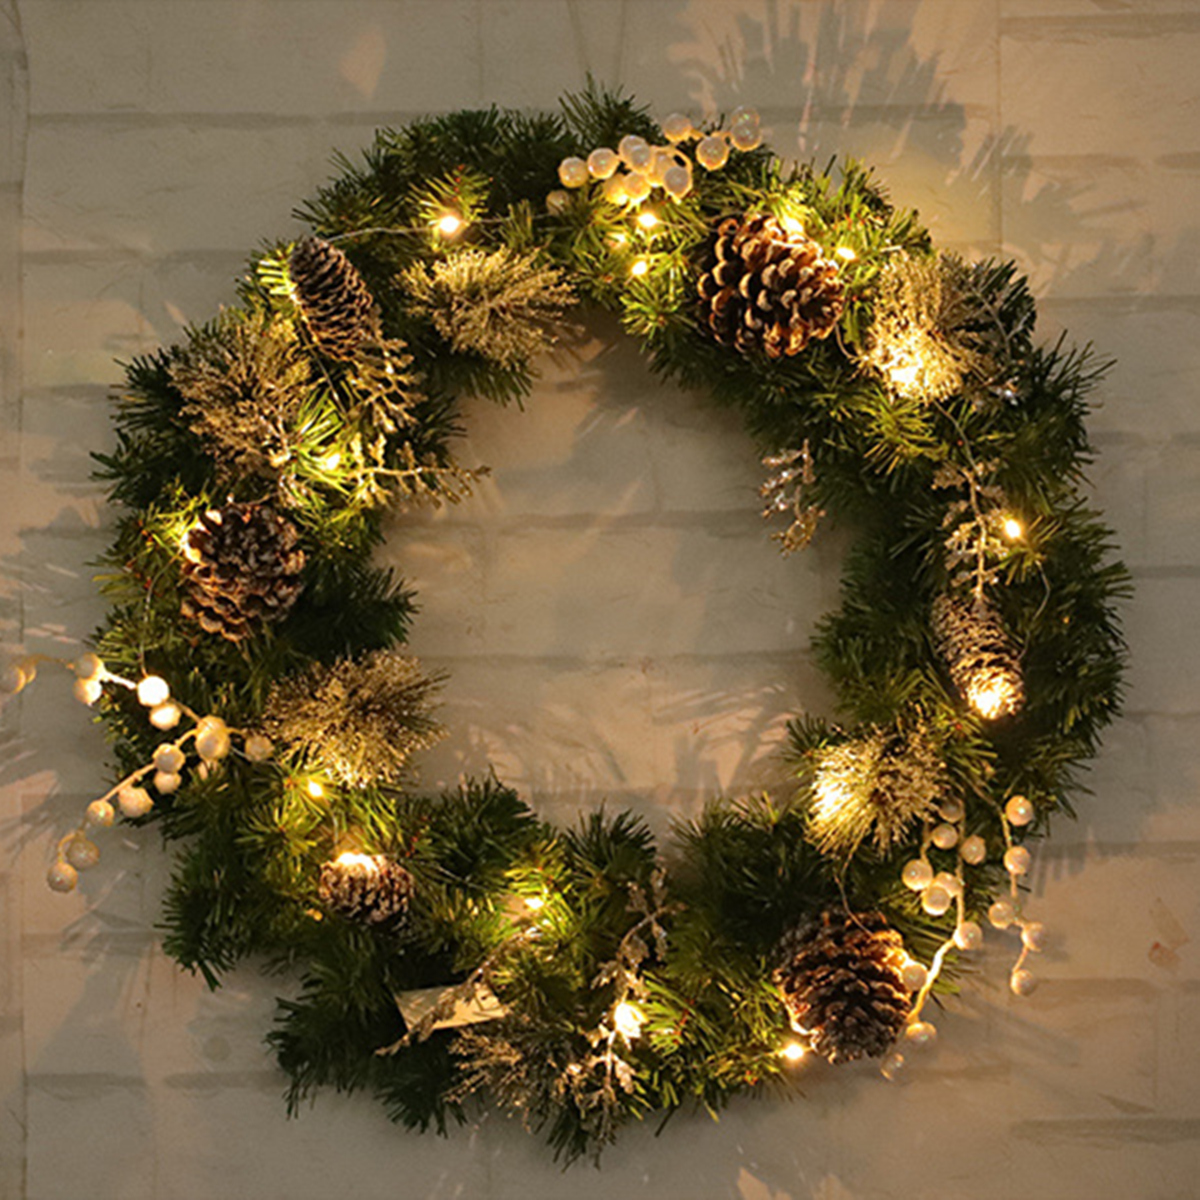 Details about 60CM Large Christmas Wreath Xmas Decor LED Light Home Hotel Shop Door Garland AU